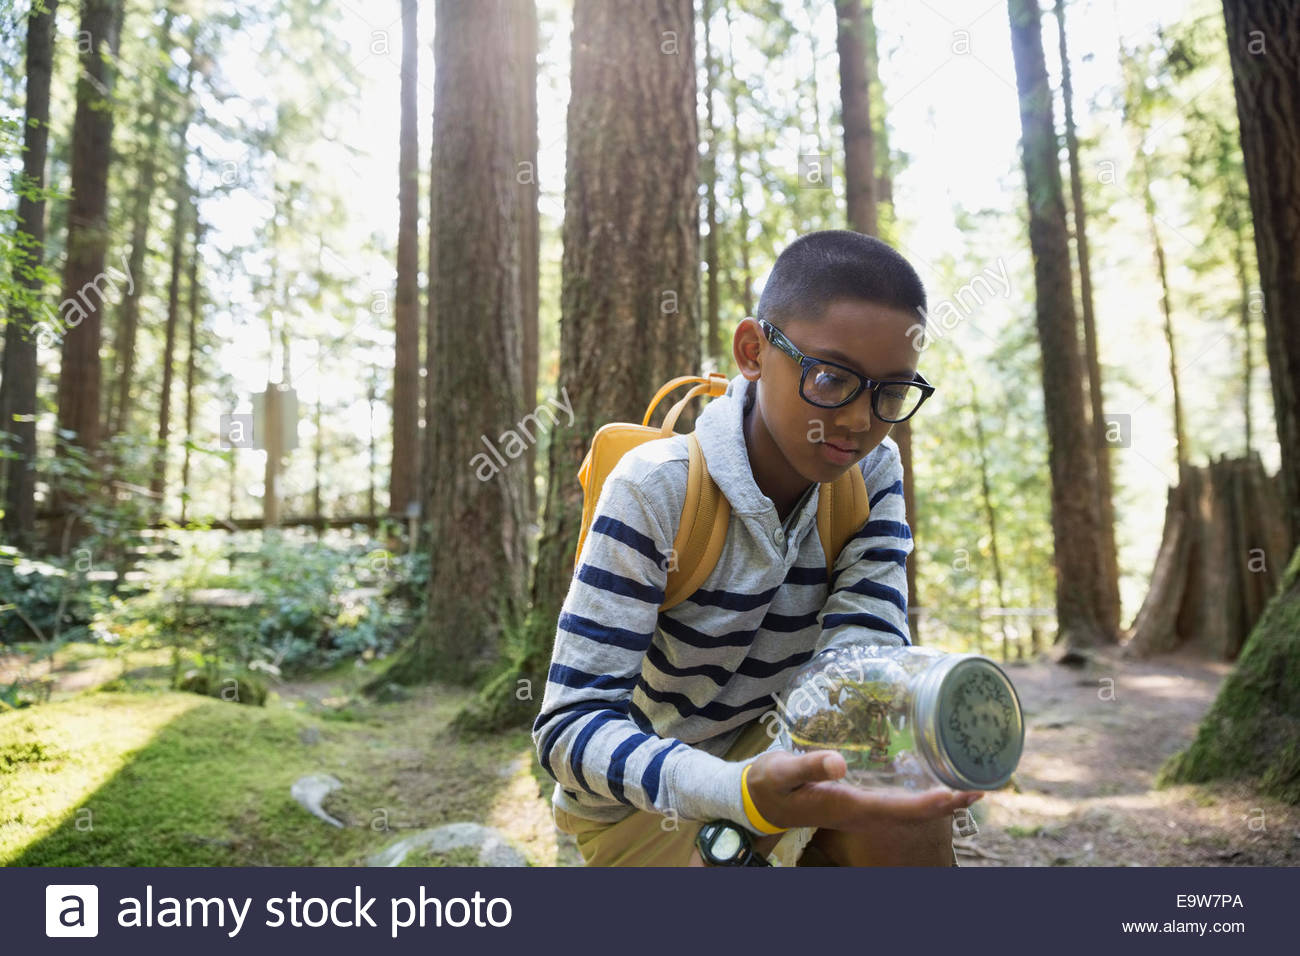 Boy in woods examining plants in jar - Stock Image